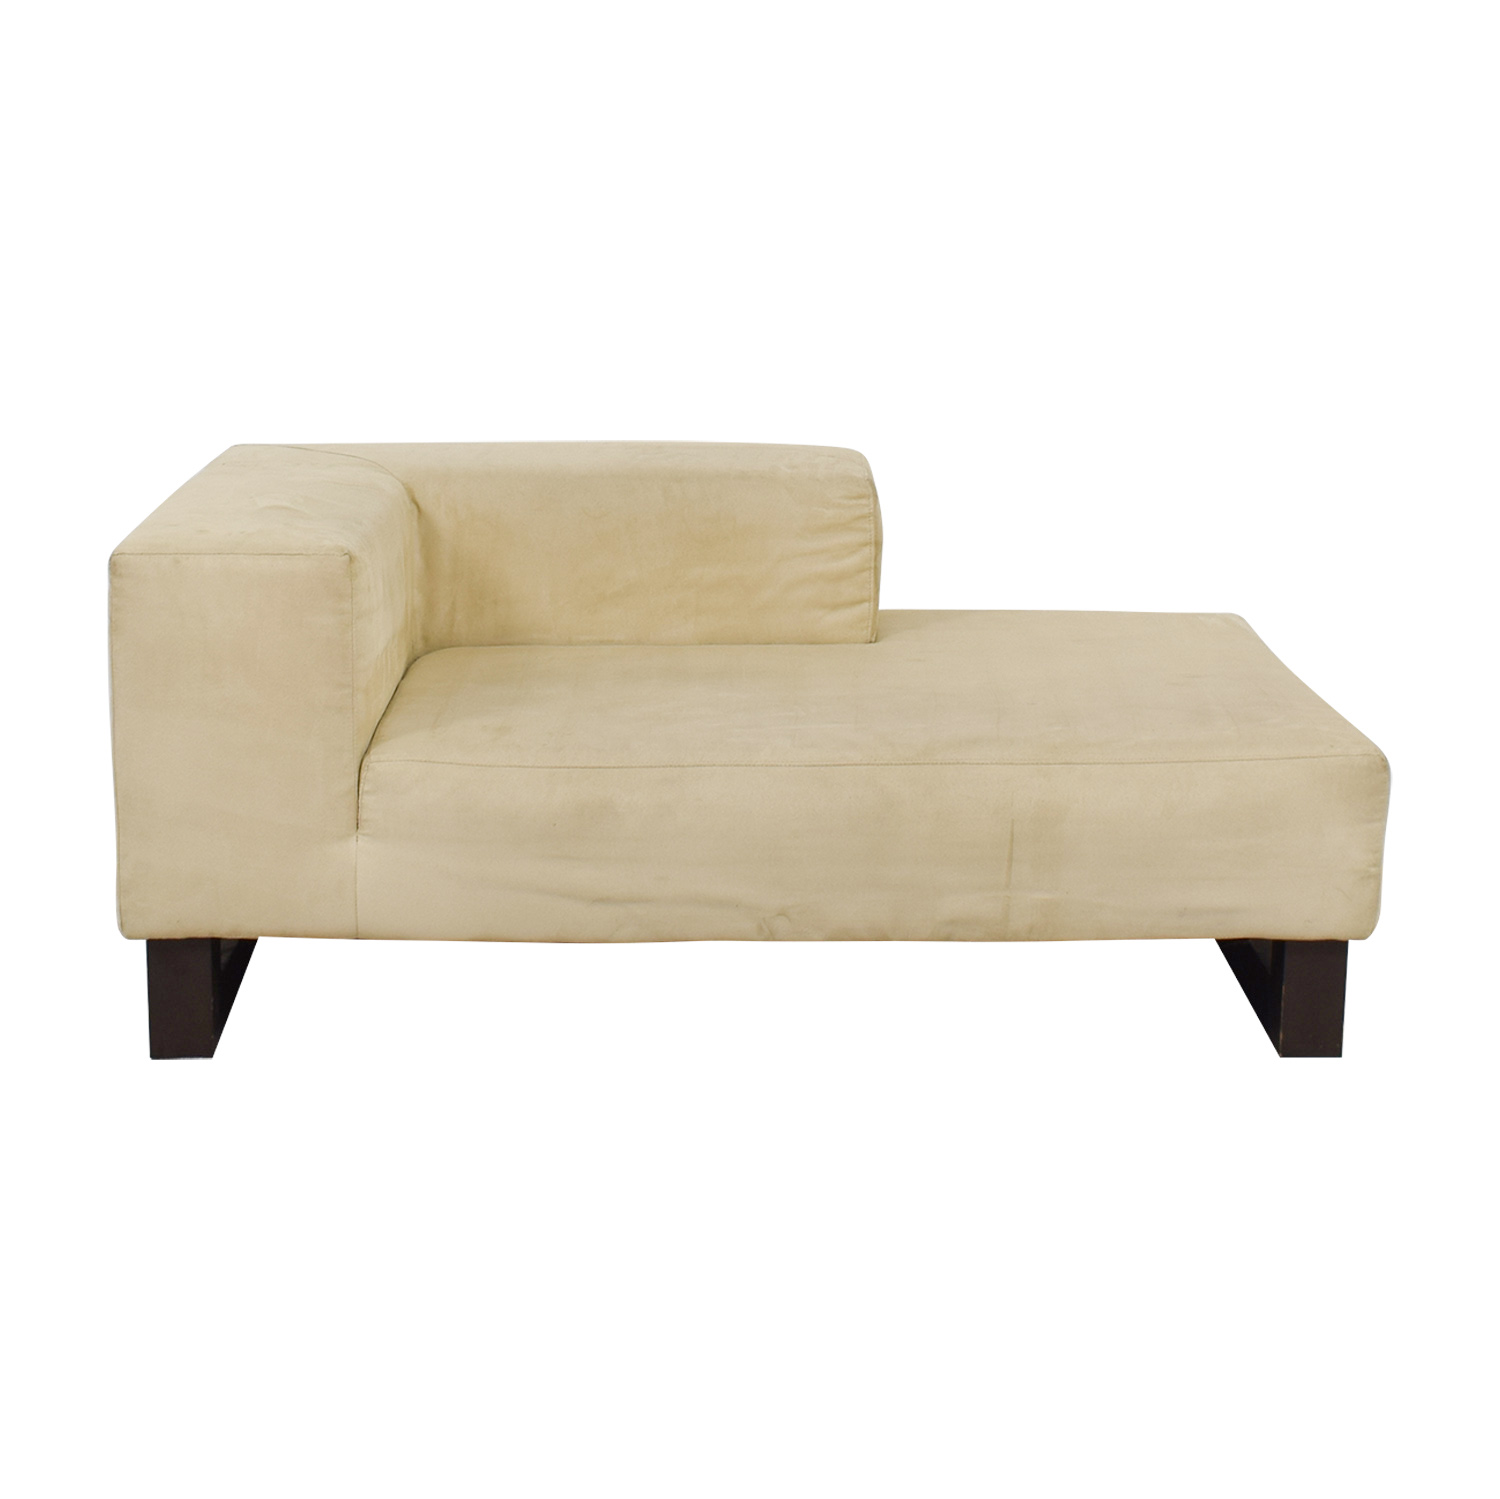 West Elm West Elm Beige Chaise nyc